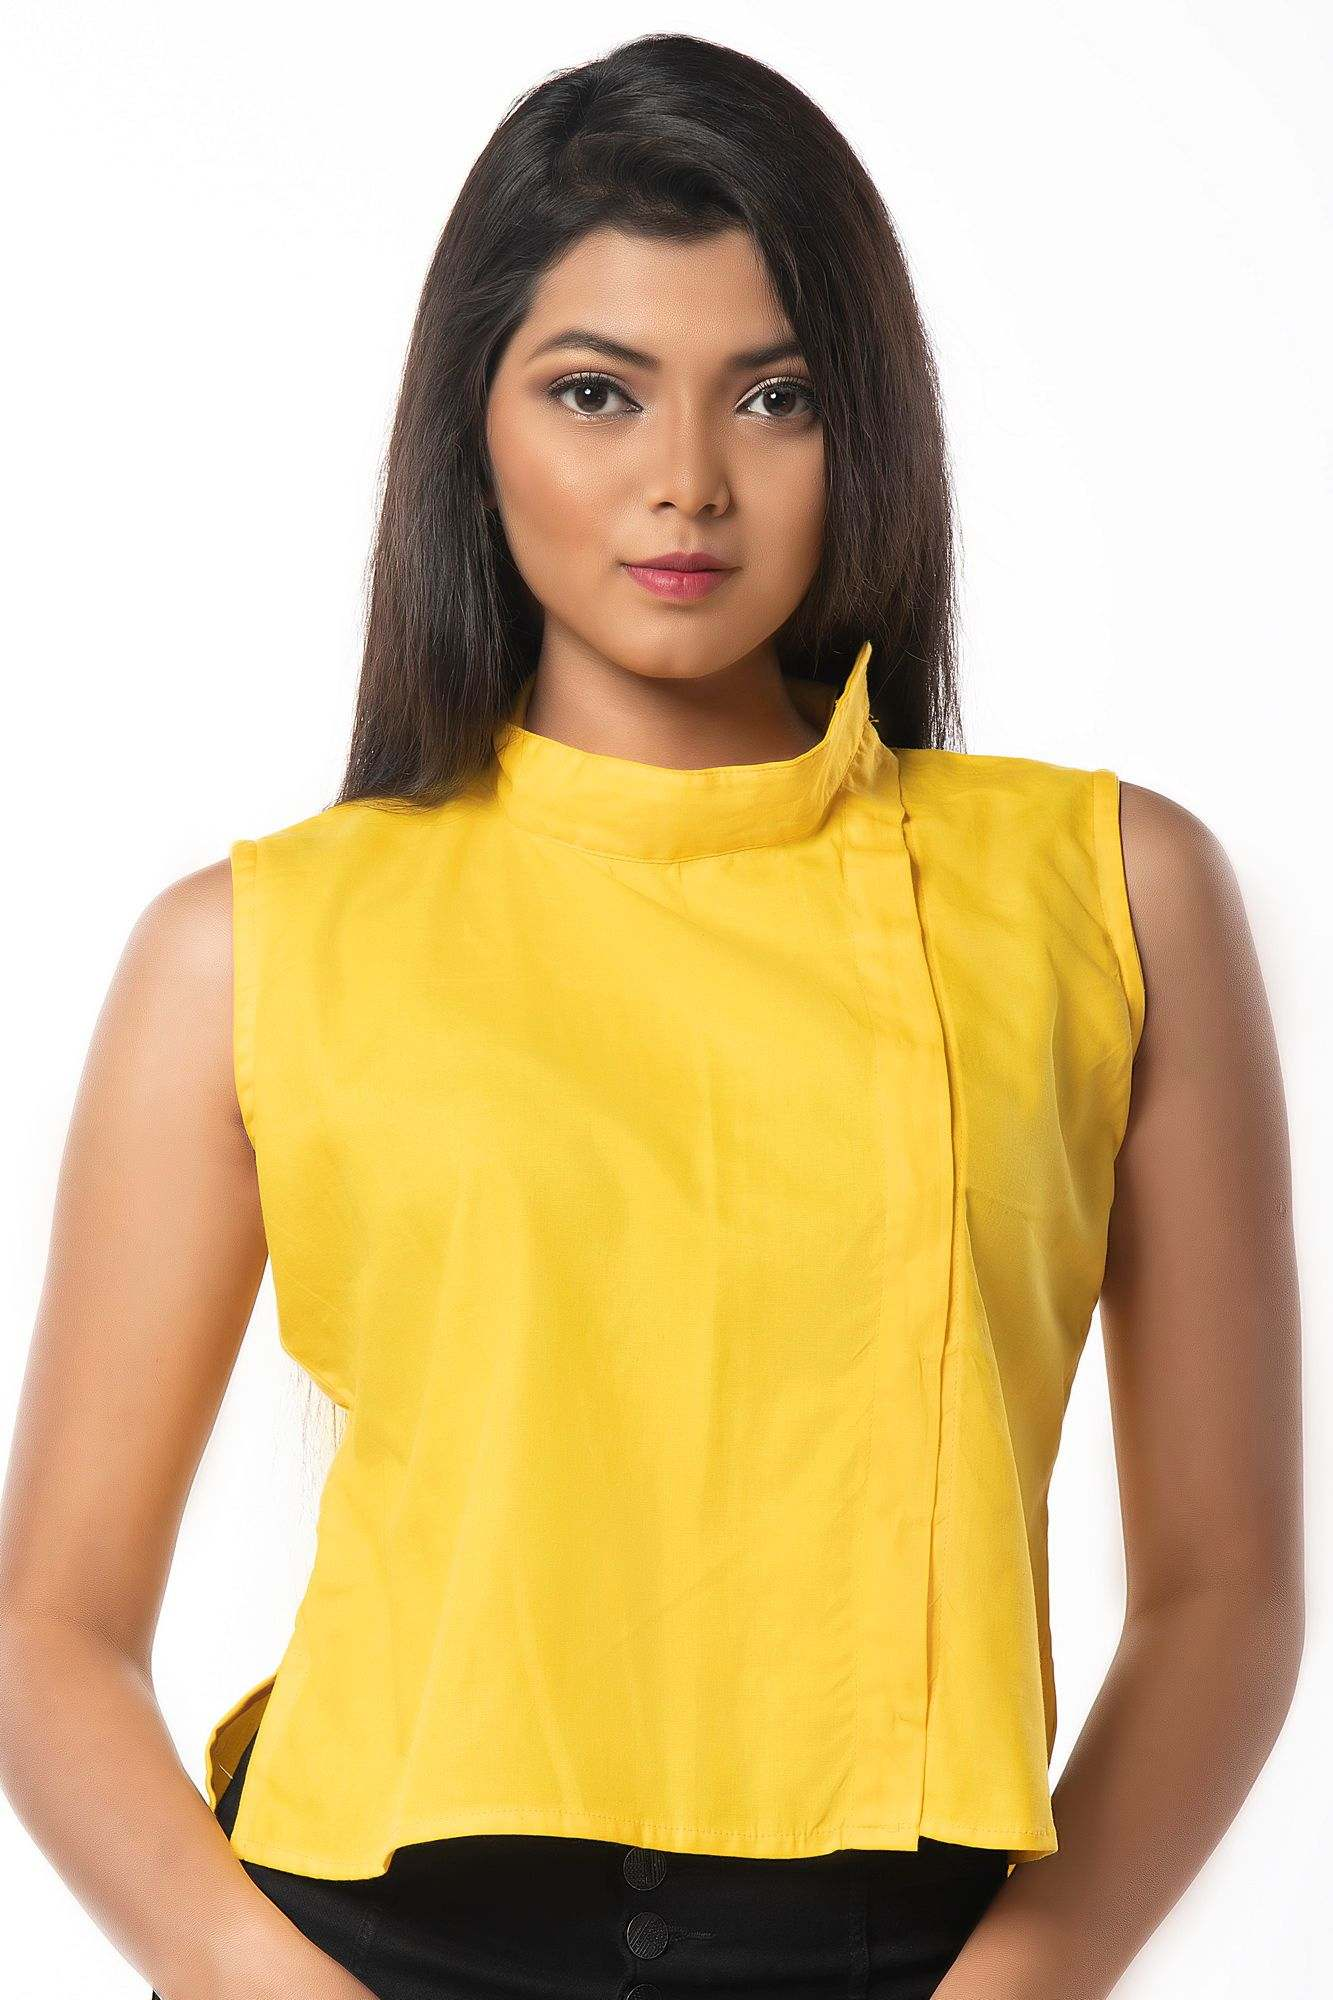 YELLOW COLORED BLOUSE CUM TOP